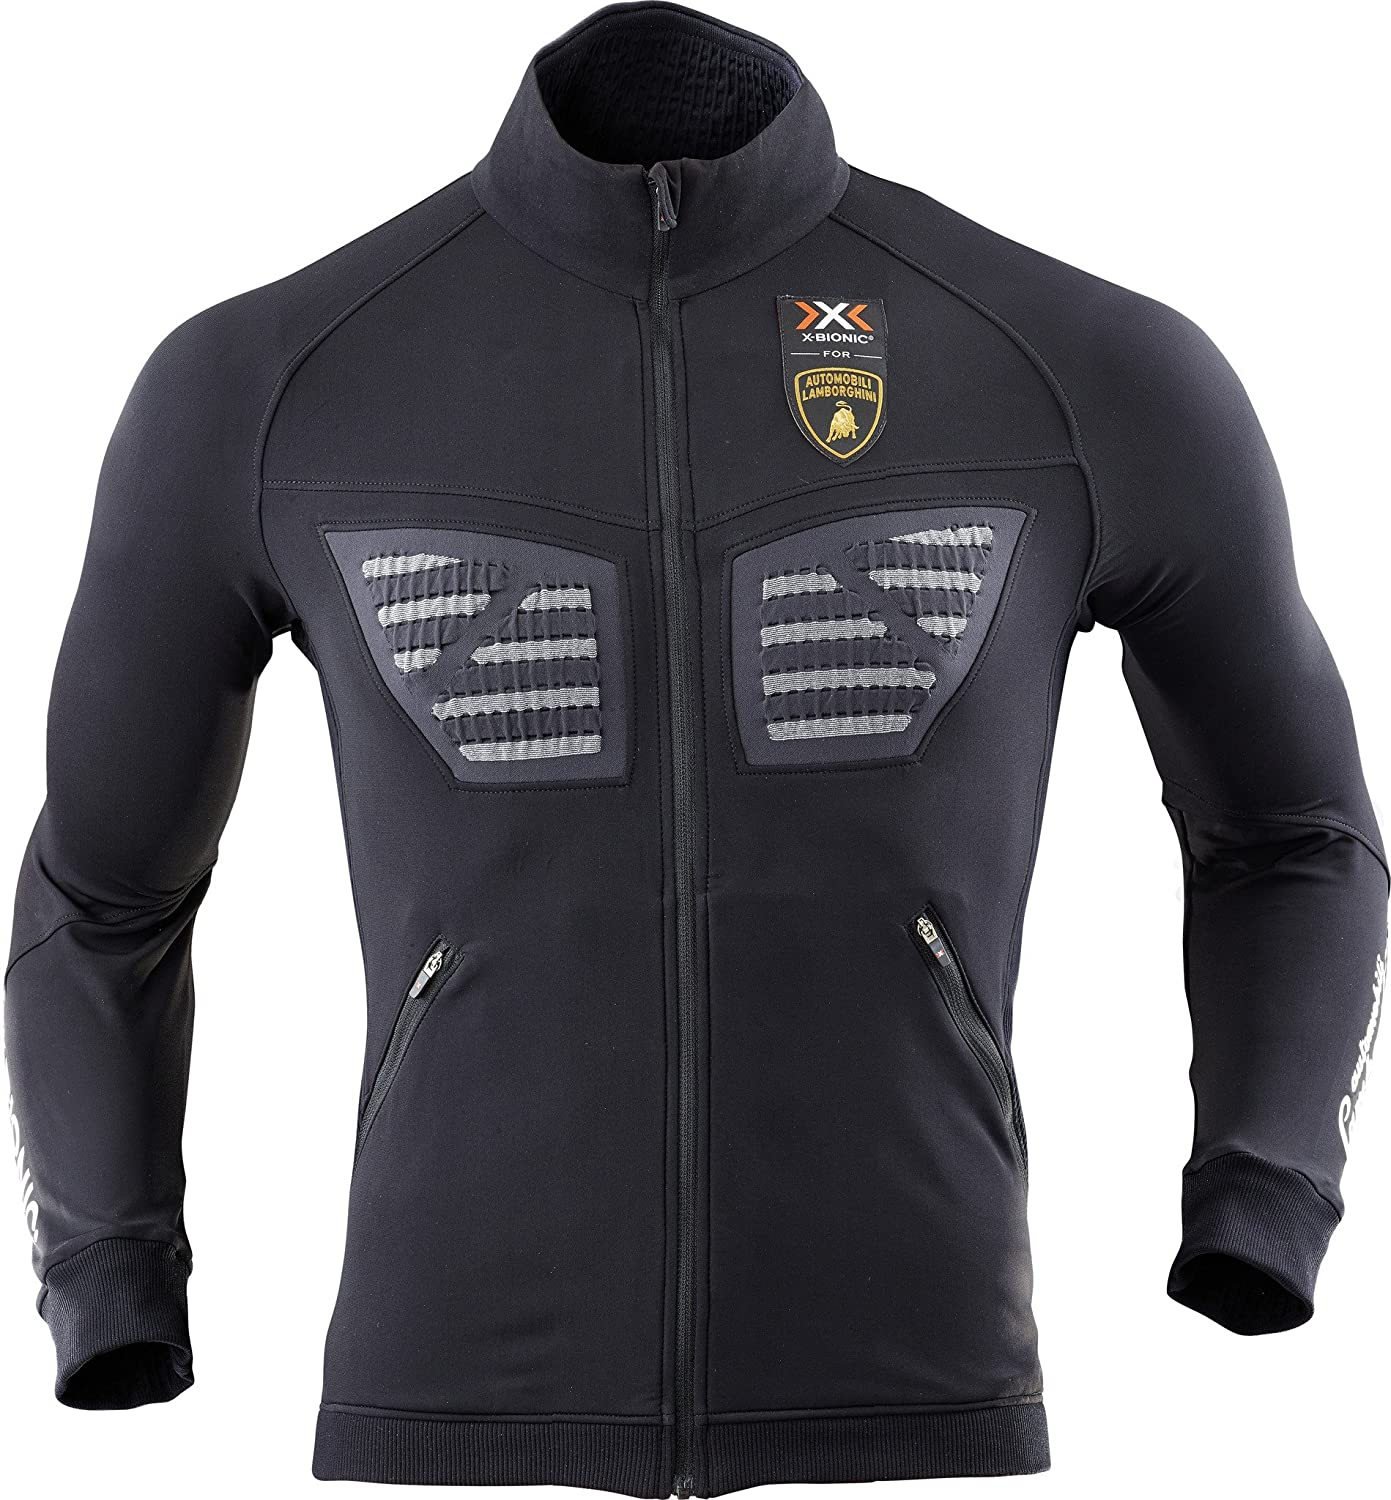 X-BIONIC for Automobili Lamborghini Outdoor Racoon Jacket Black-Anthracite günstig